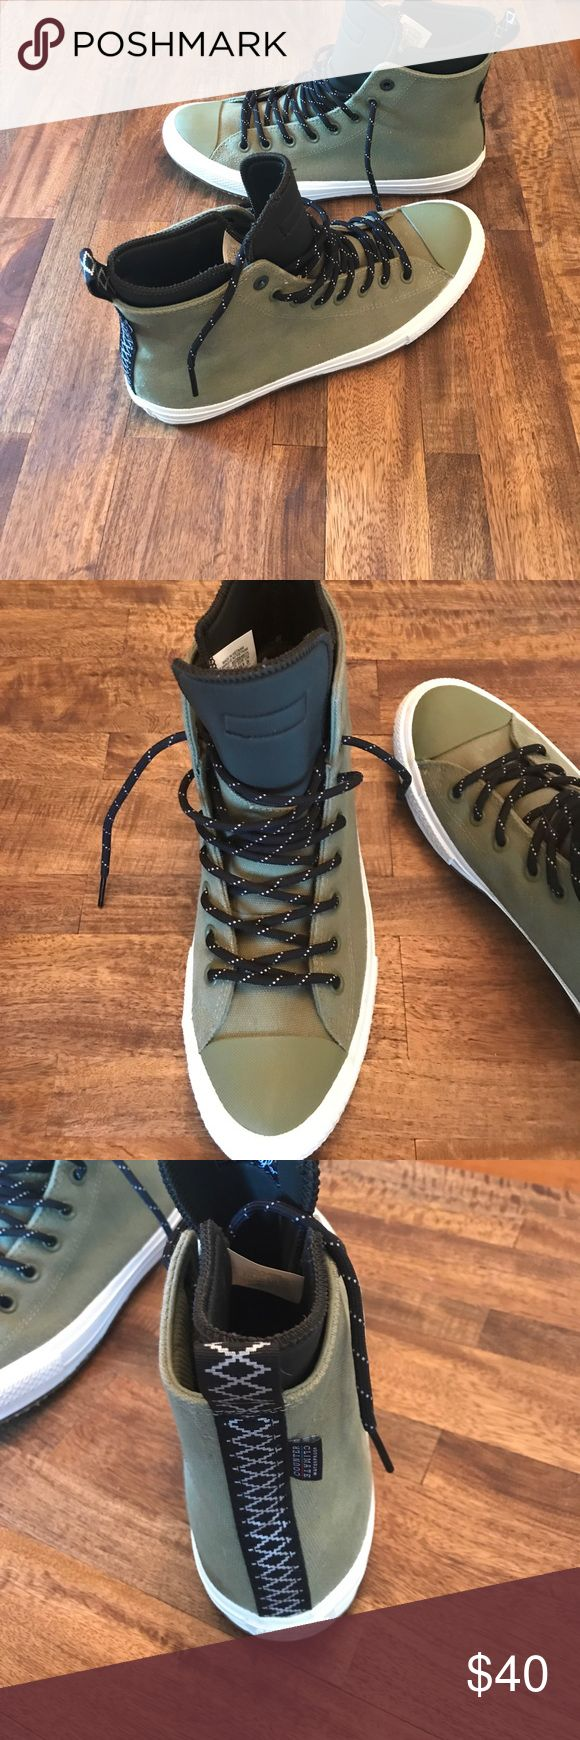 Men's Converse Chuck Taylor high tops green Wore these shoes two times maybe, just didn't dig the new take on an old design. Waterproof!  Size 10.5 mens Converse Shoes Sneakers